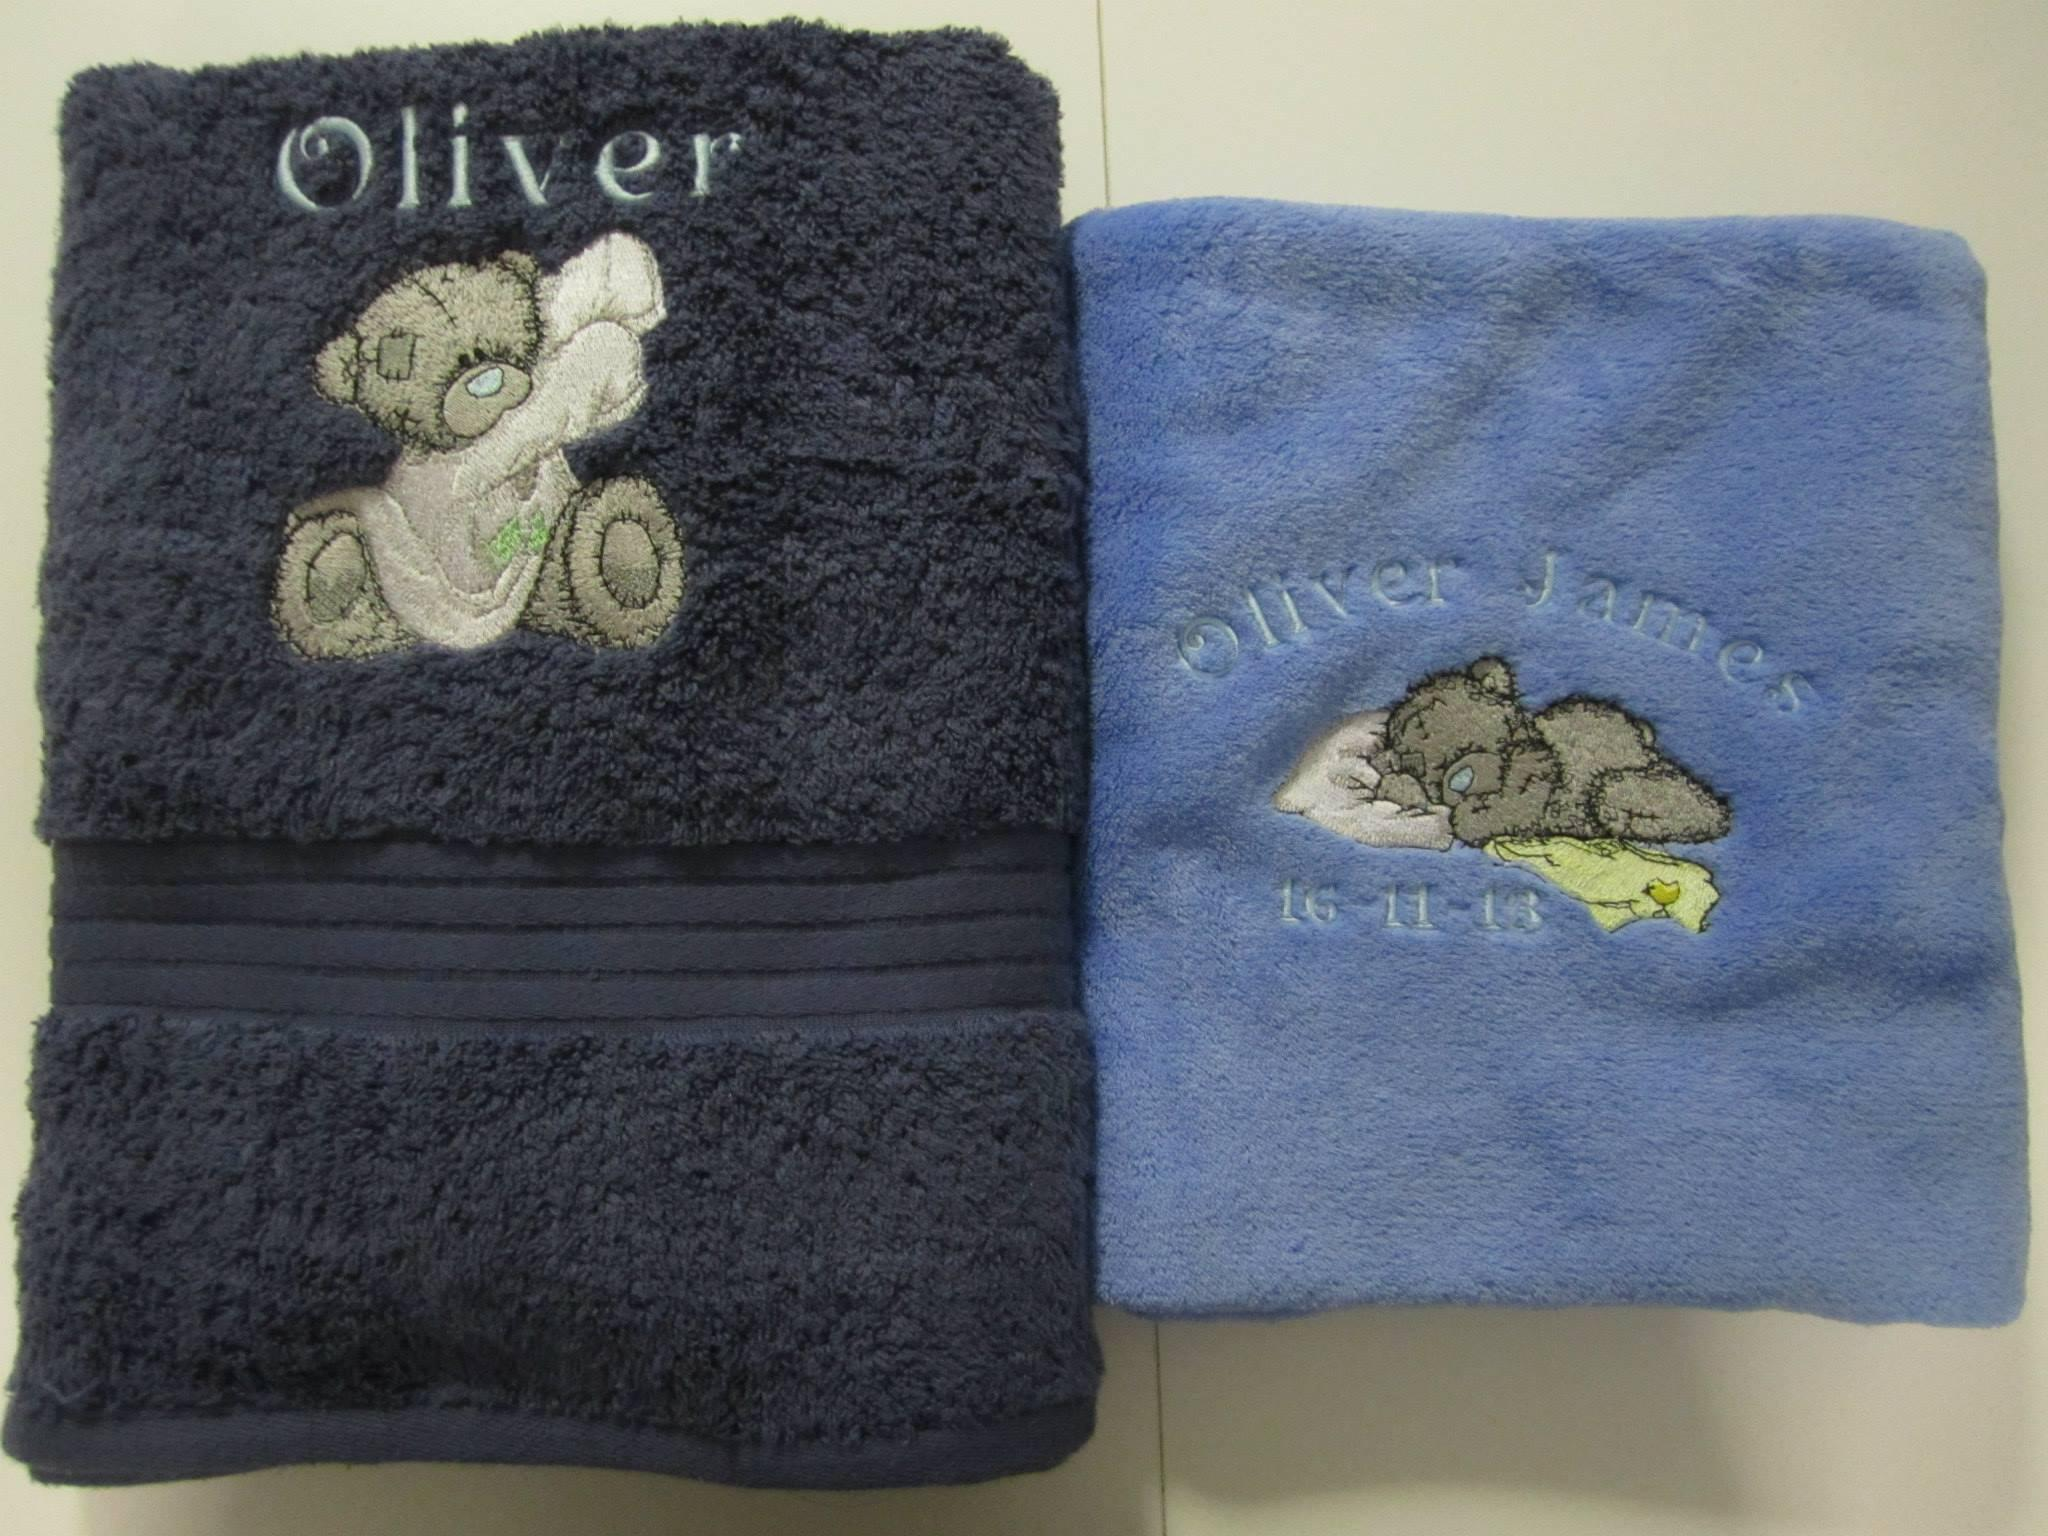 Towels with Teddy bear embroidery designs